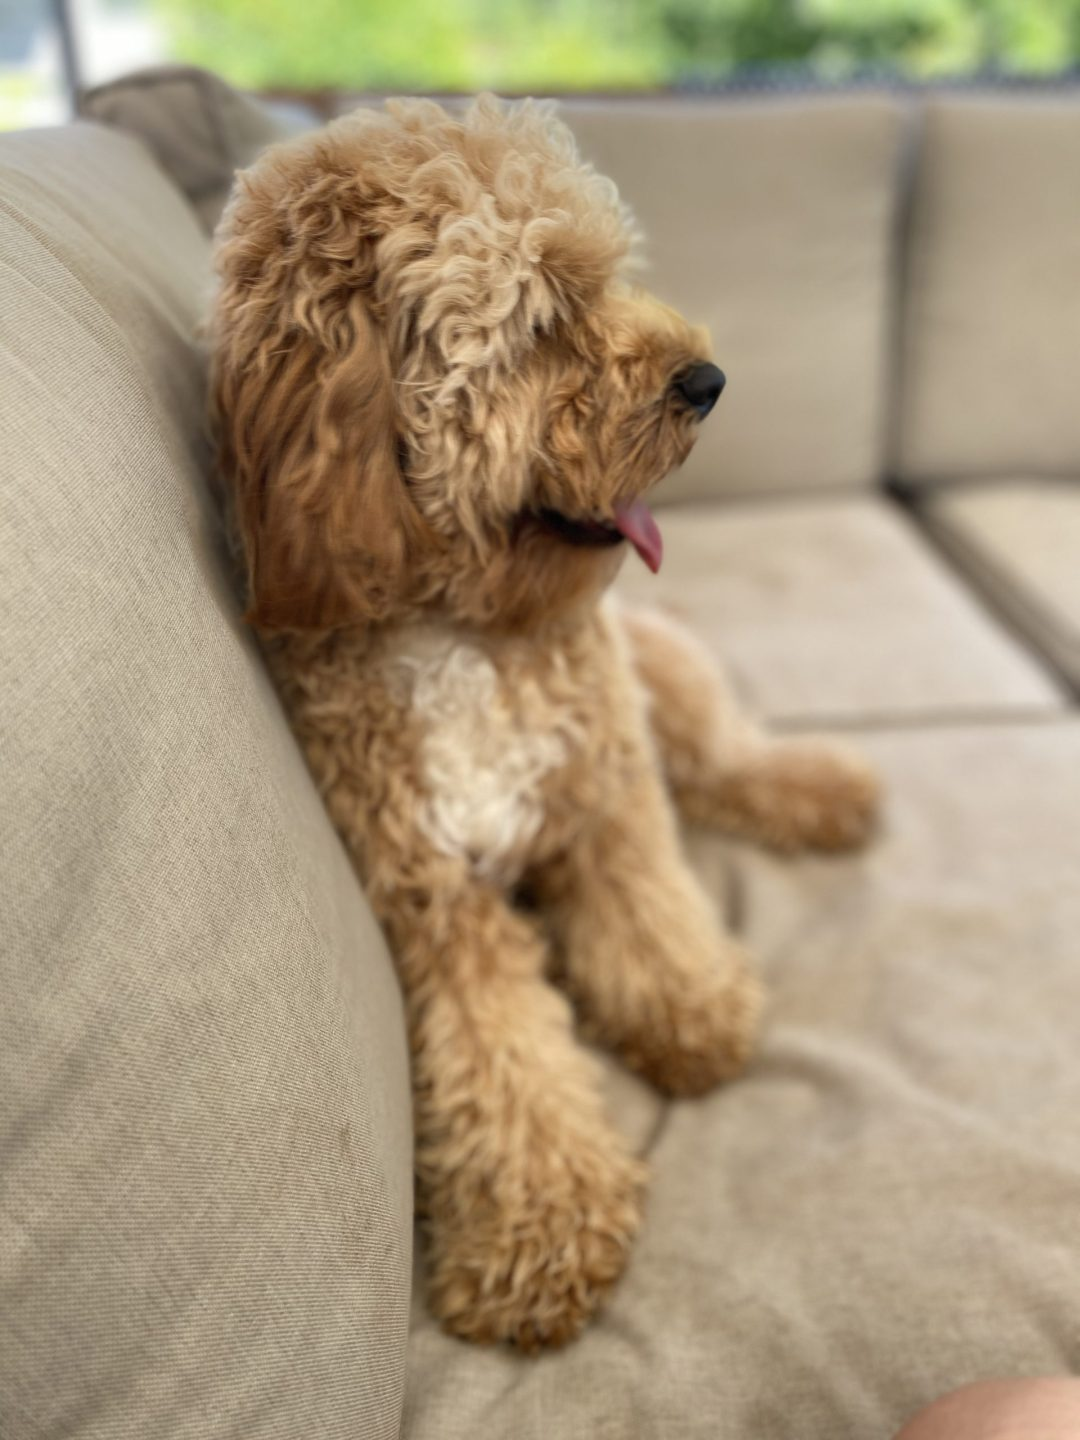 Difference Cavapoo vs Cavoodle vs Cavadoodle